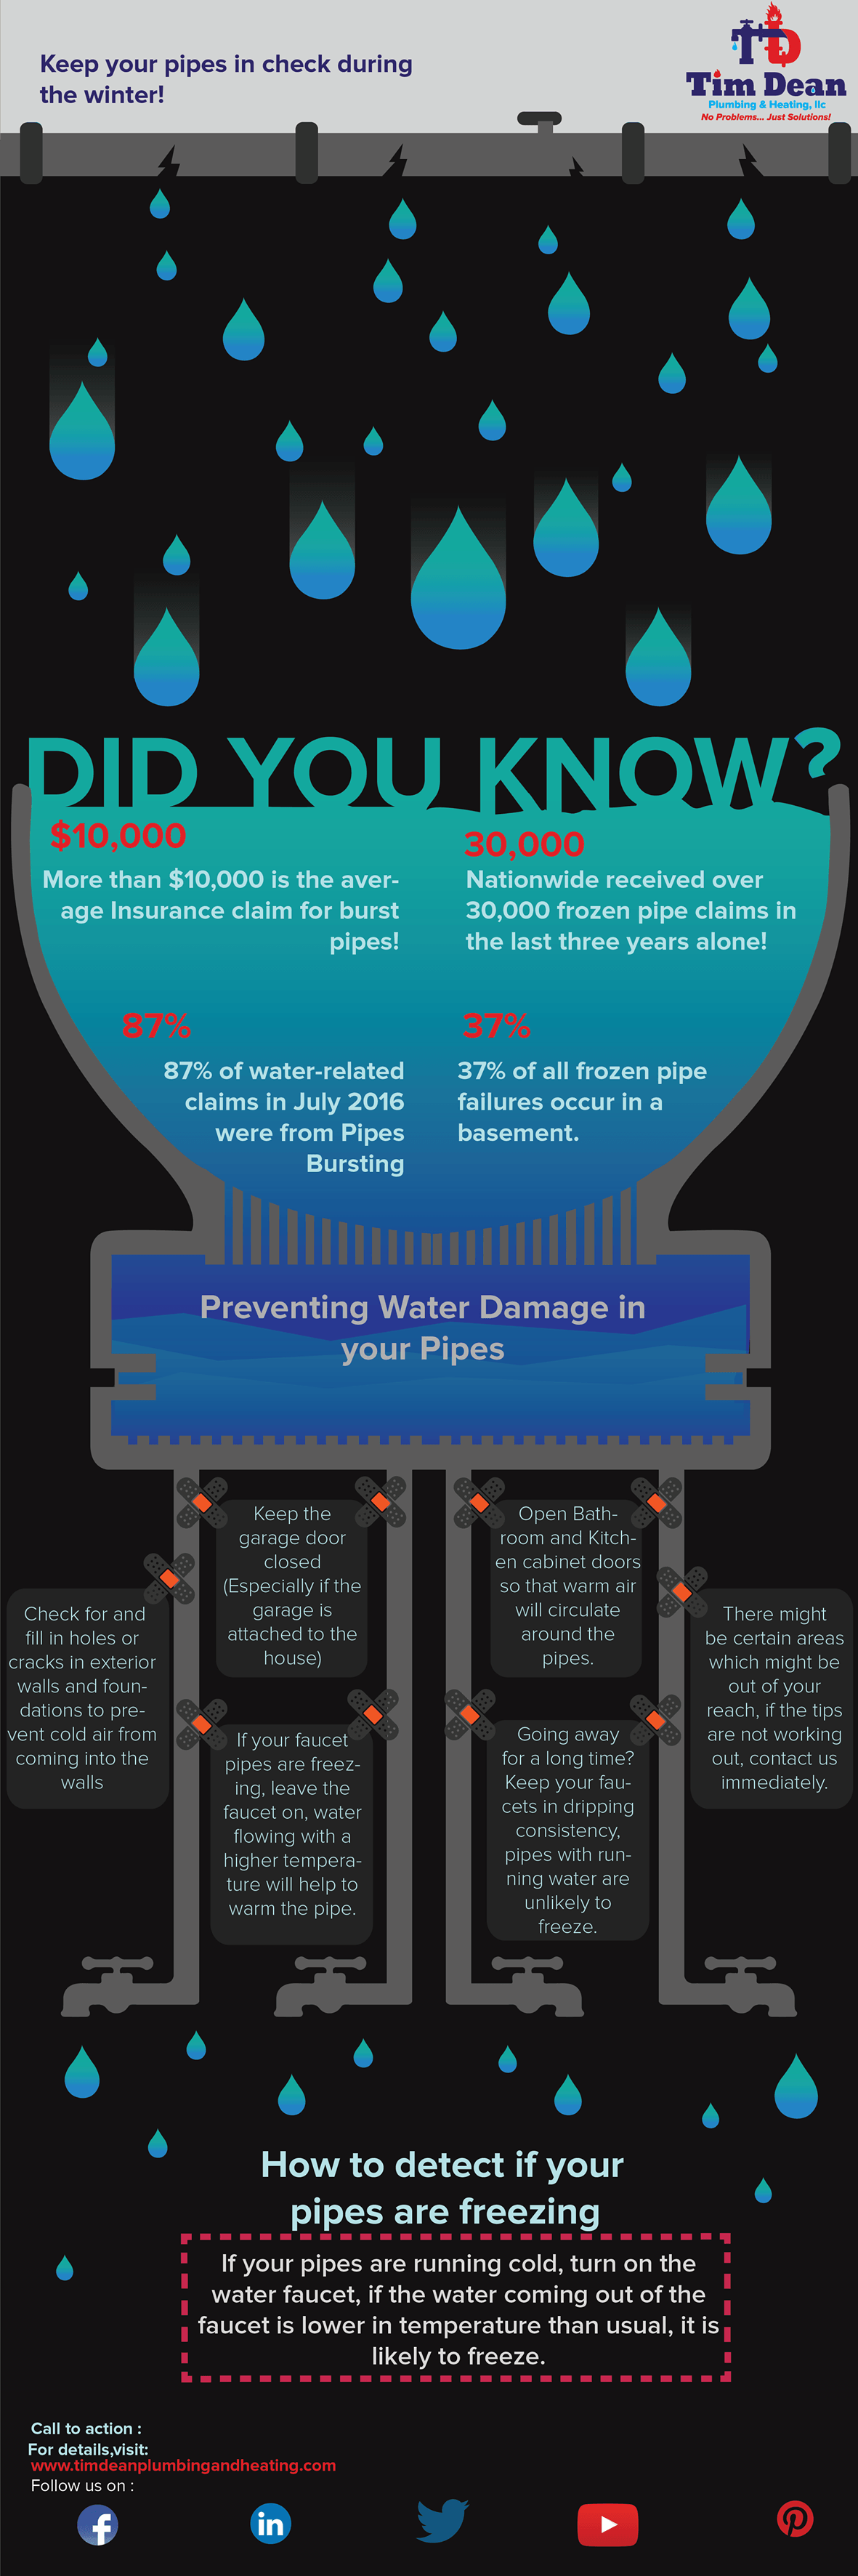 This spasmodic circulation of water leads to about 5 minutes of actual circulation per hour which in turn causes far less water heater demand compared to ... & Prevention of Water Pipe Damage After a Long Winter - Tim Dean ...